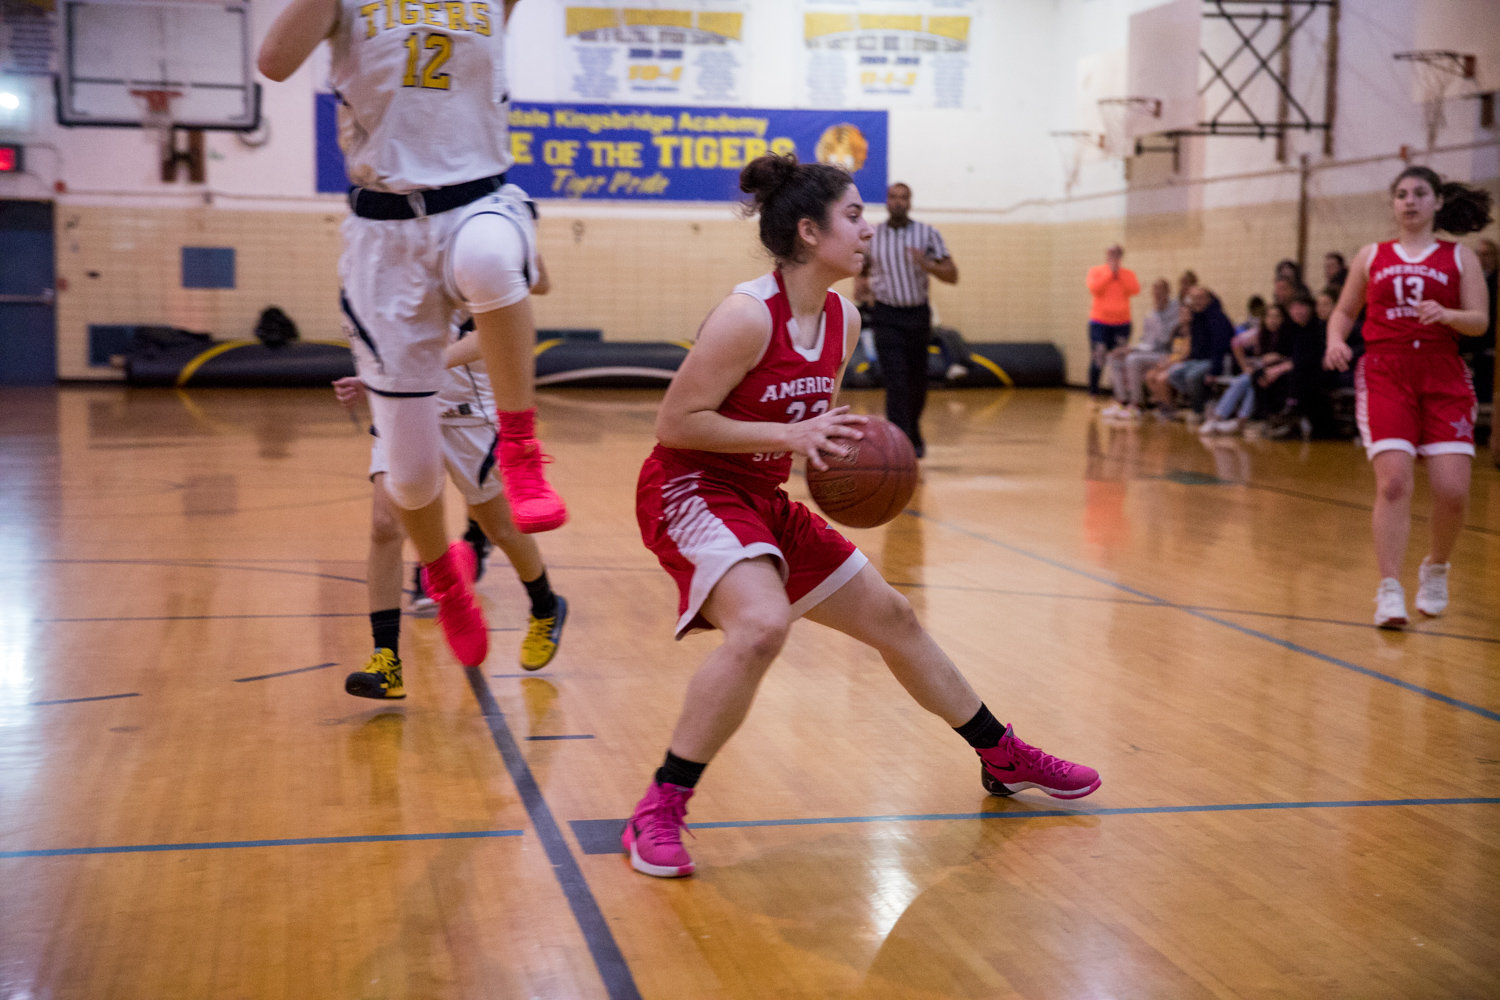 American Studies' senior Emily Eljamal scored a combined 26 points in wins over RKA and Tuitt last week.